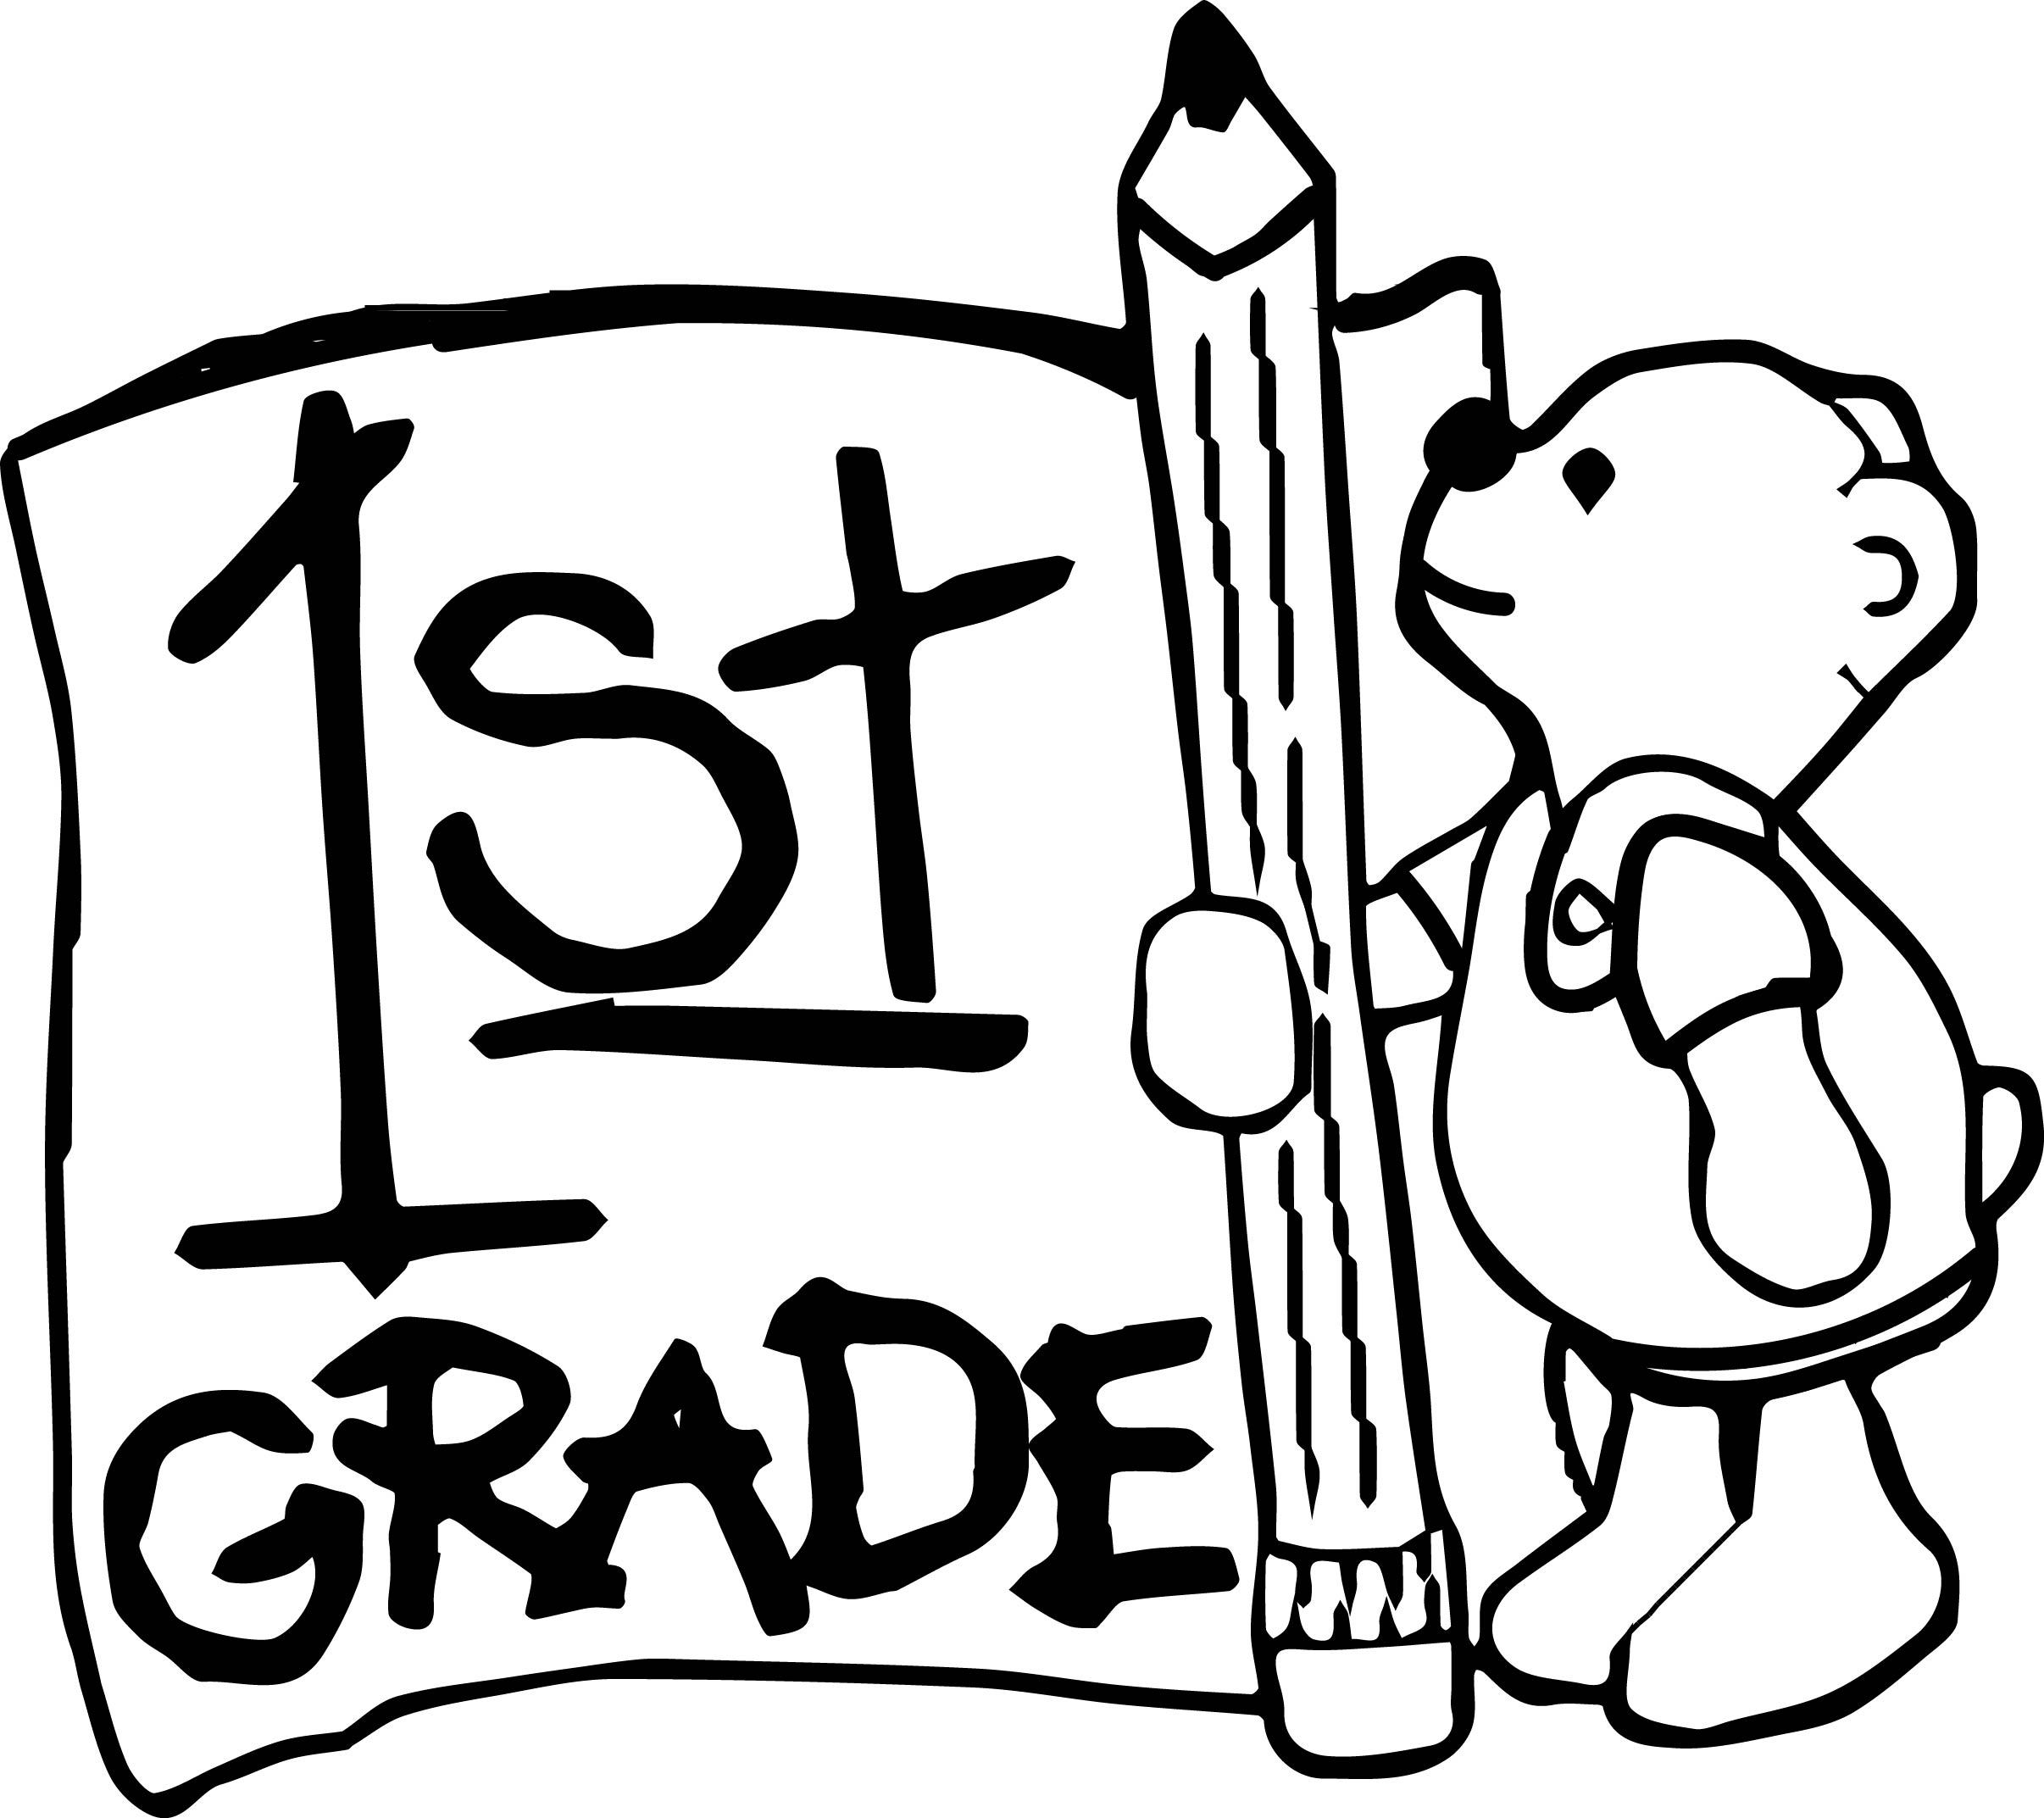 1st grade bear coloring page for Coloring pages for first graders